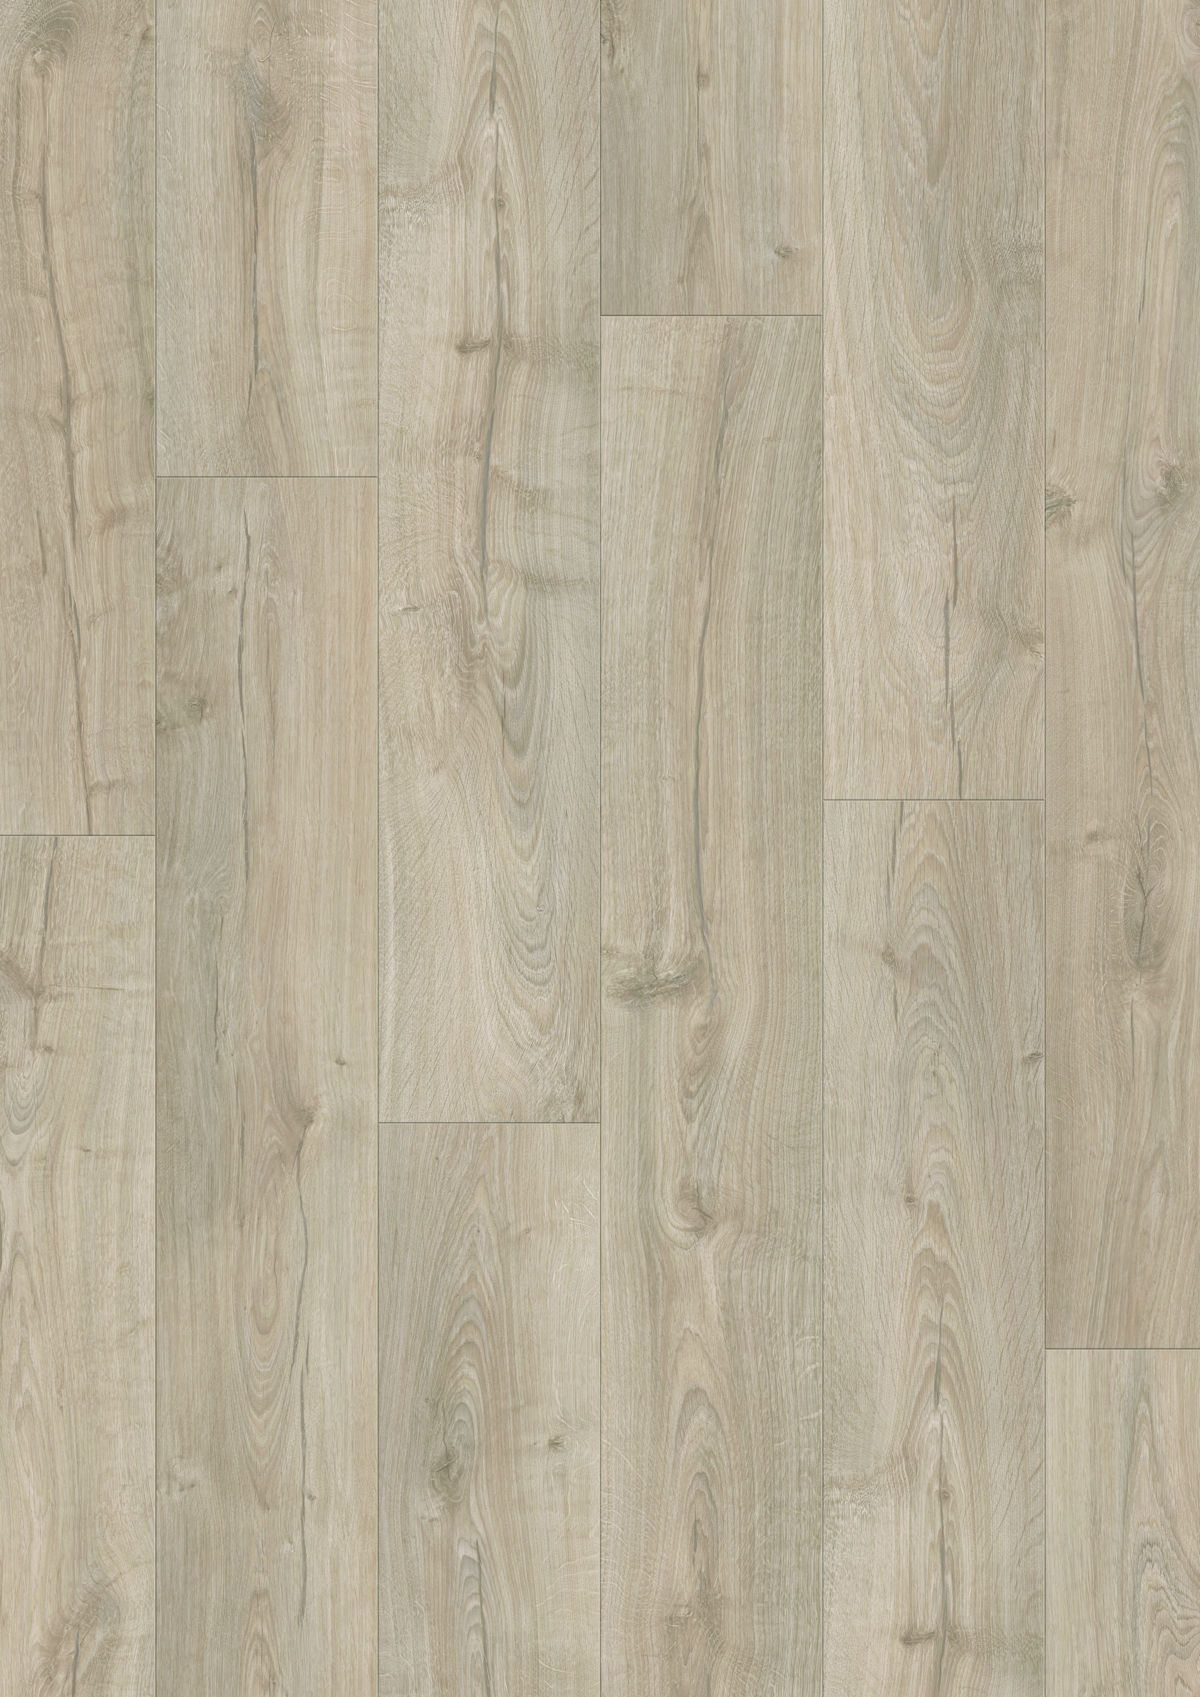 vancouver flooring valley oak floors classic eurostyle laminate